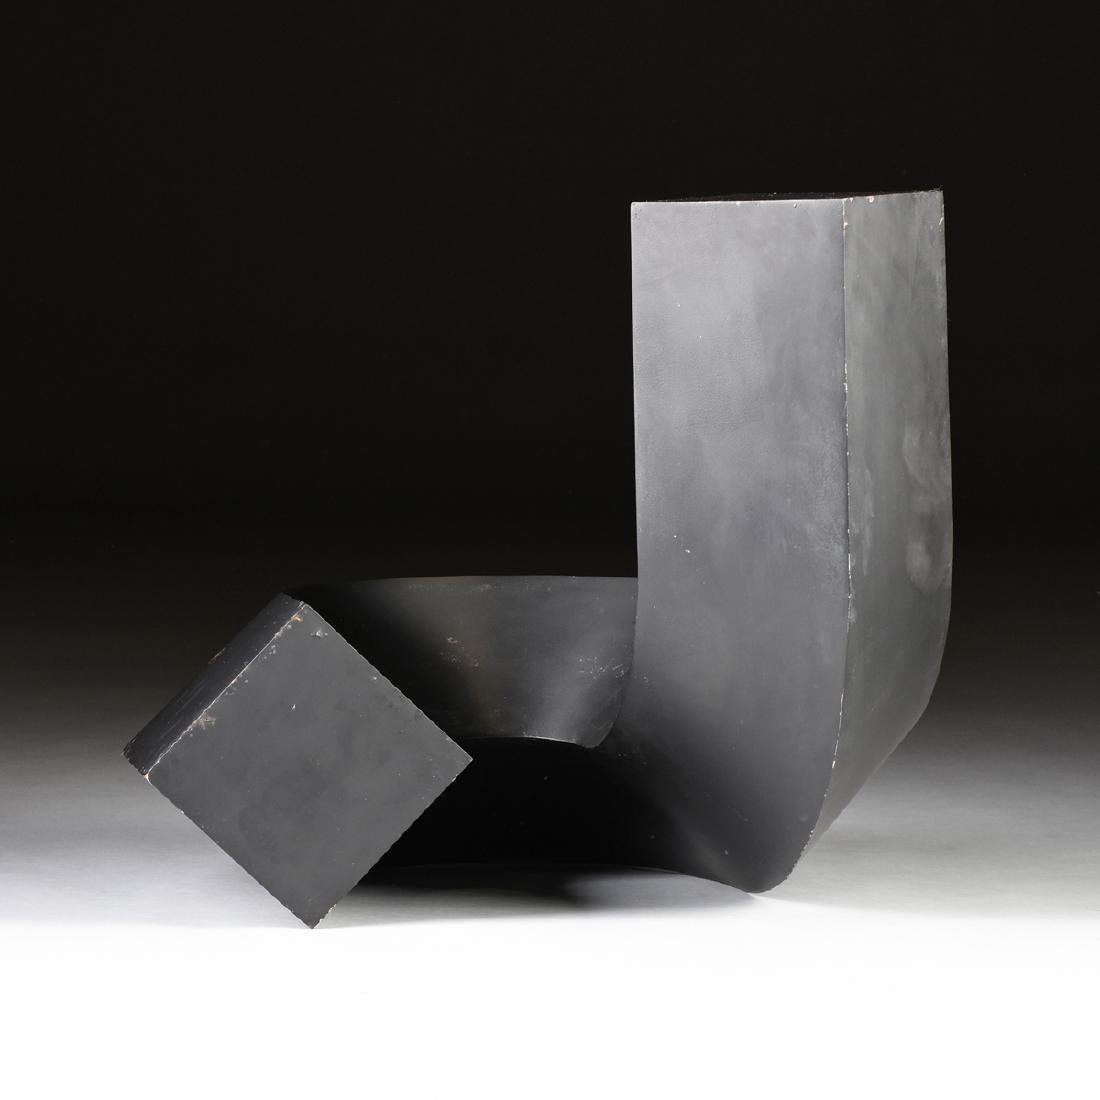 CLEMENT MEADMORE (American/Australian 1929-2005) A